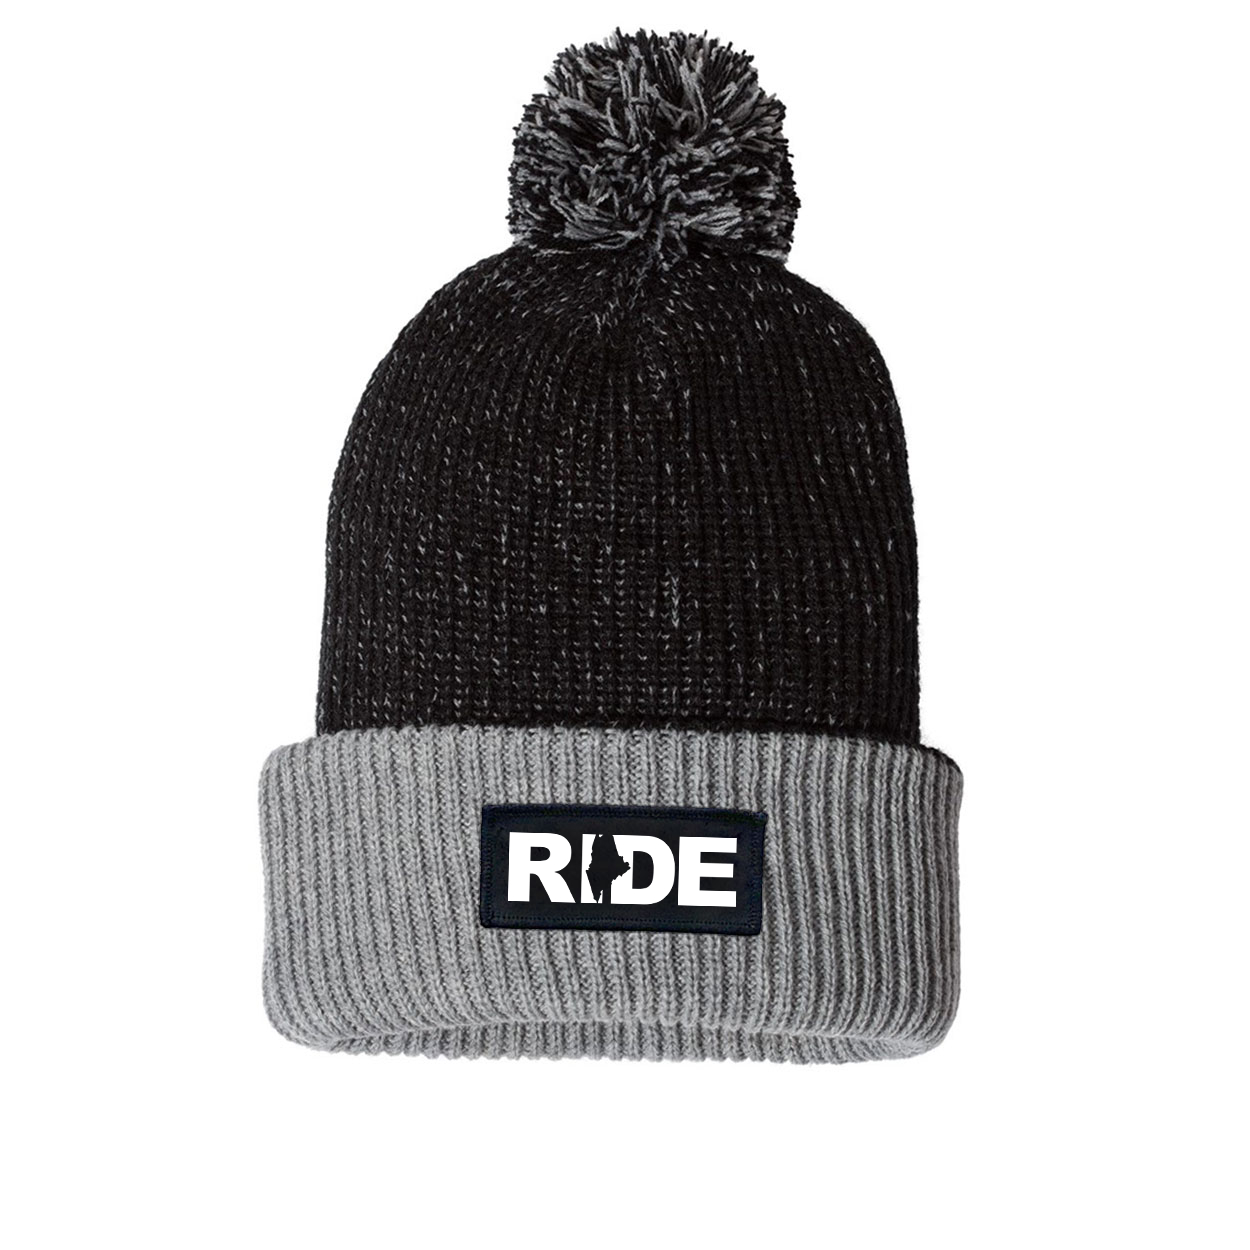 Ride Maine Night Out Woven Patch Roll Up Pom Knit Beanie Black/Gray (White Logo)